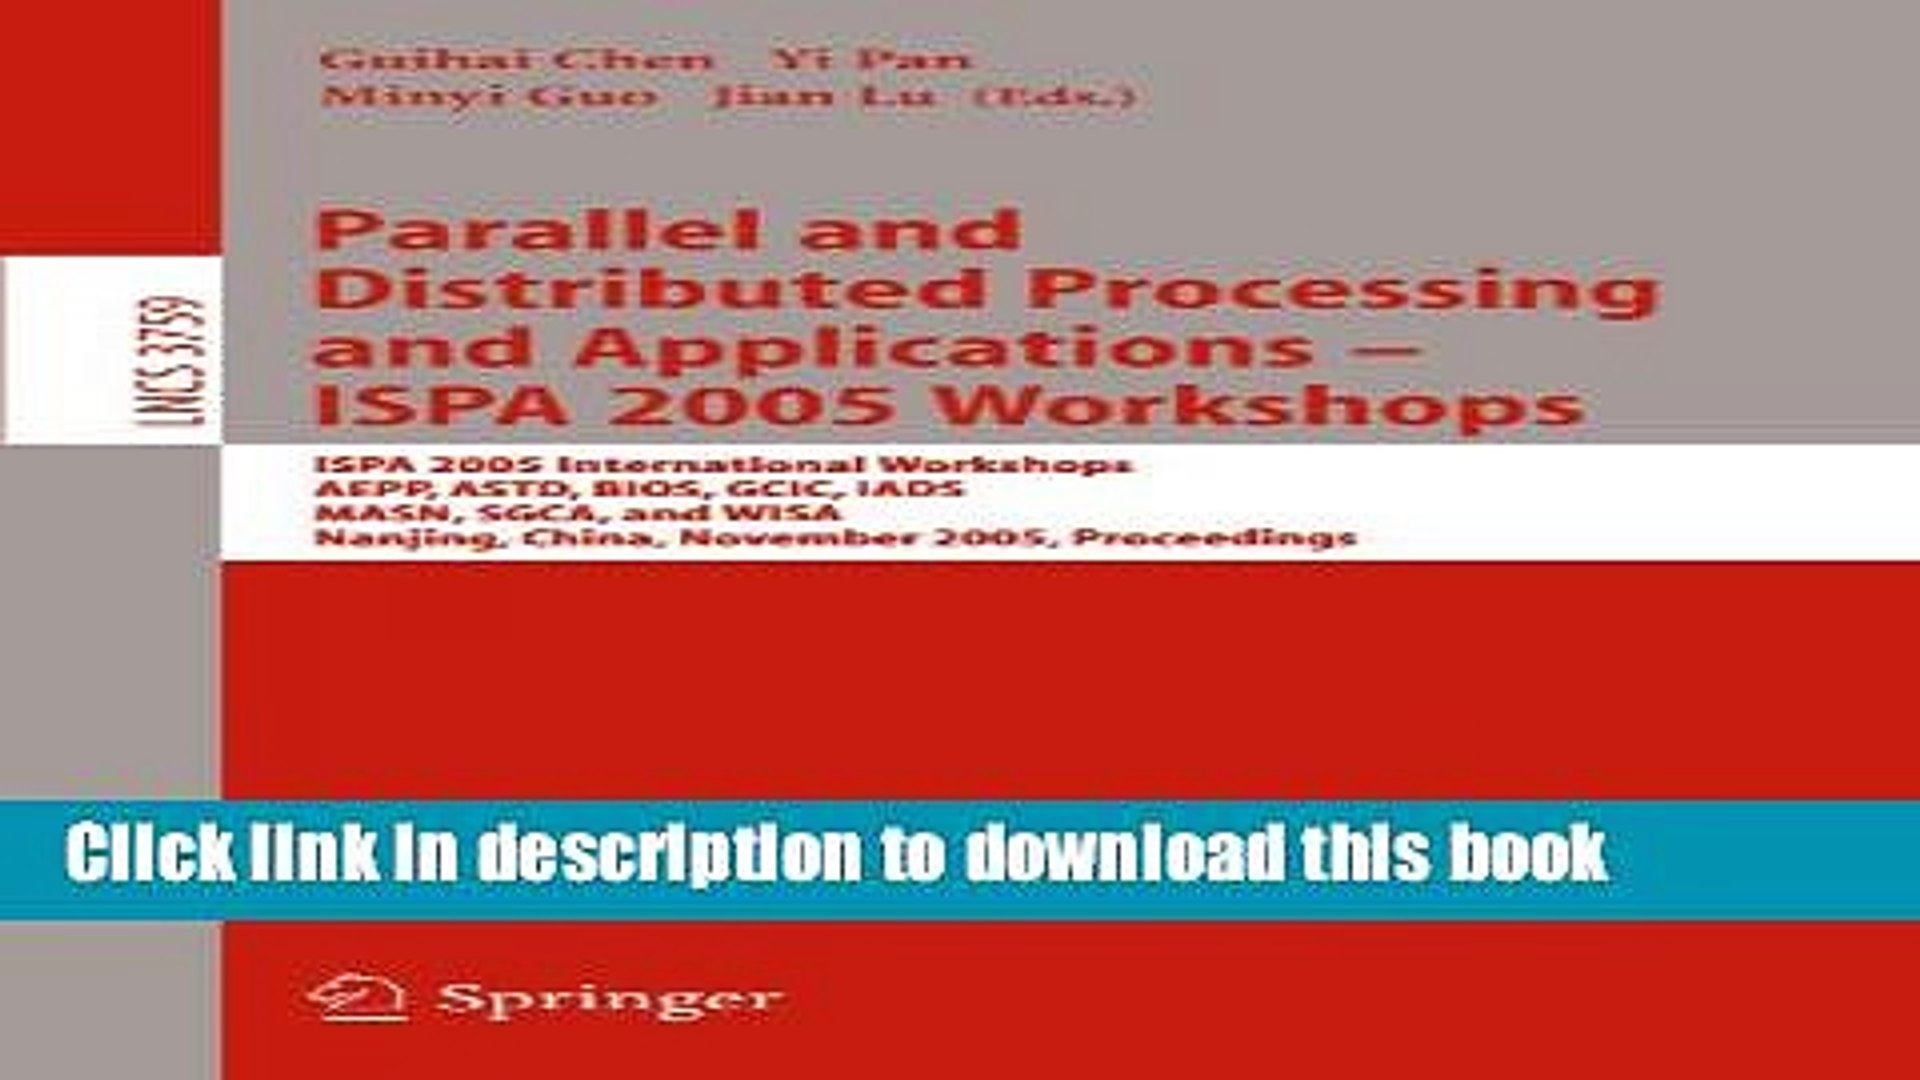 Read Parallel and Distributed Processing and Applications - ISPA 2005 Workshops: ISPA 2005